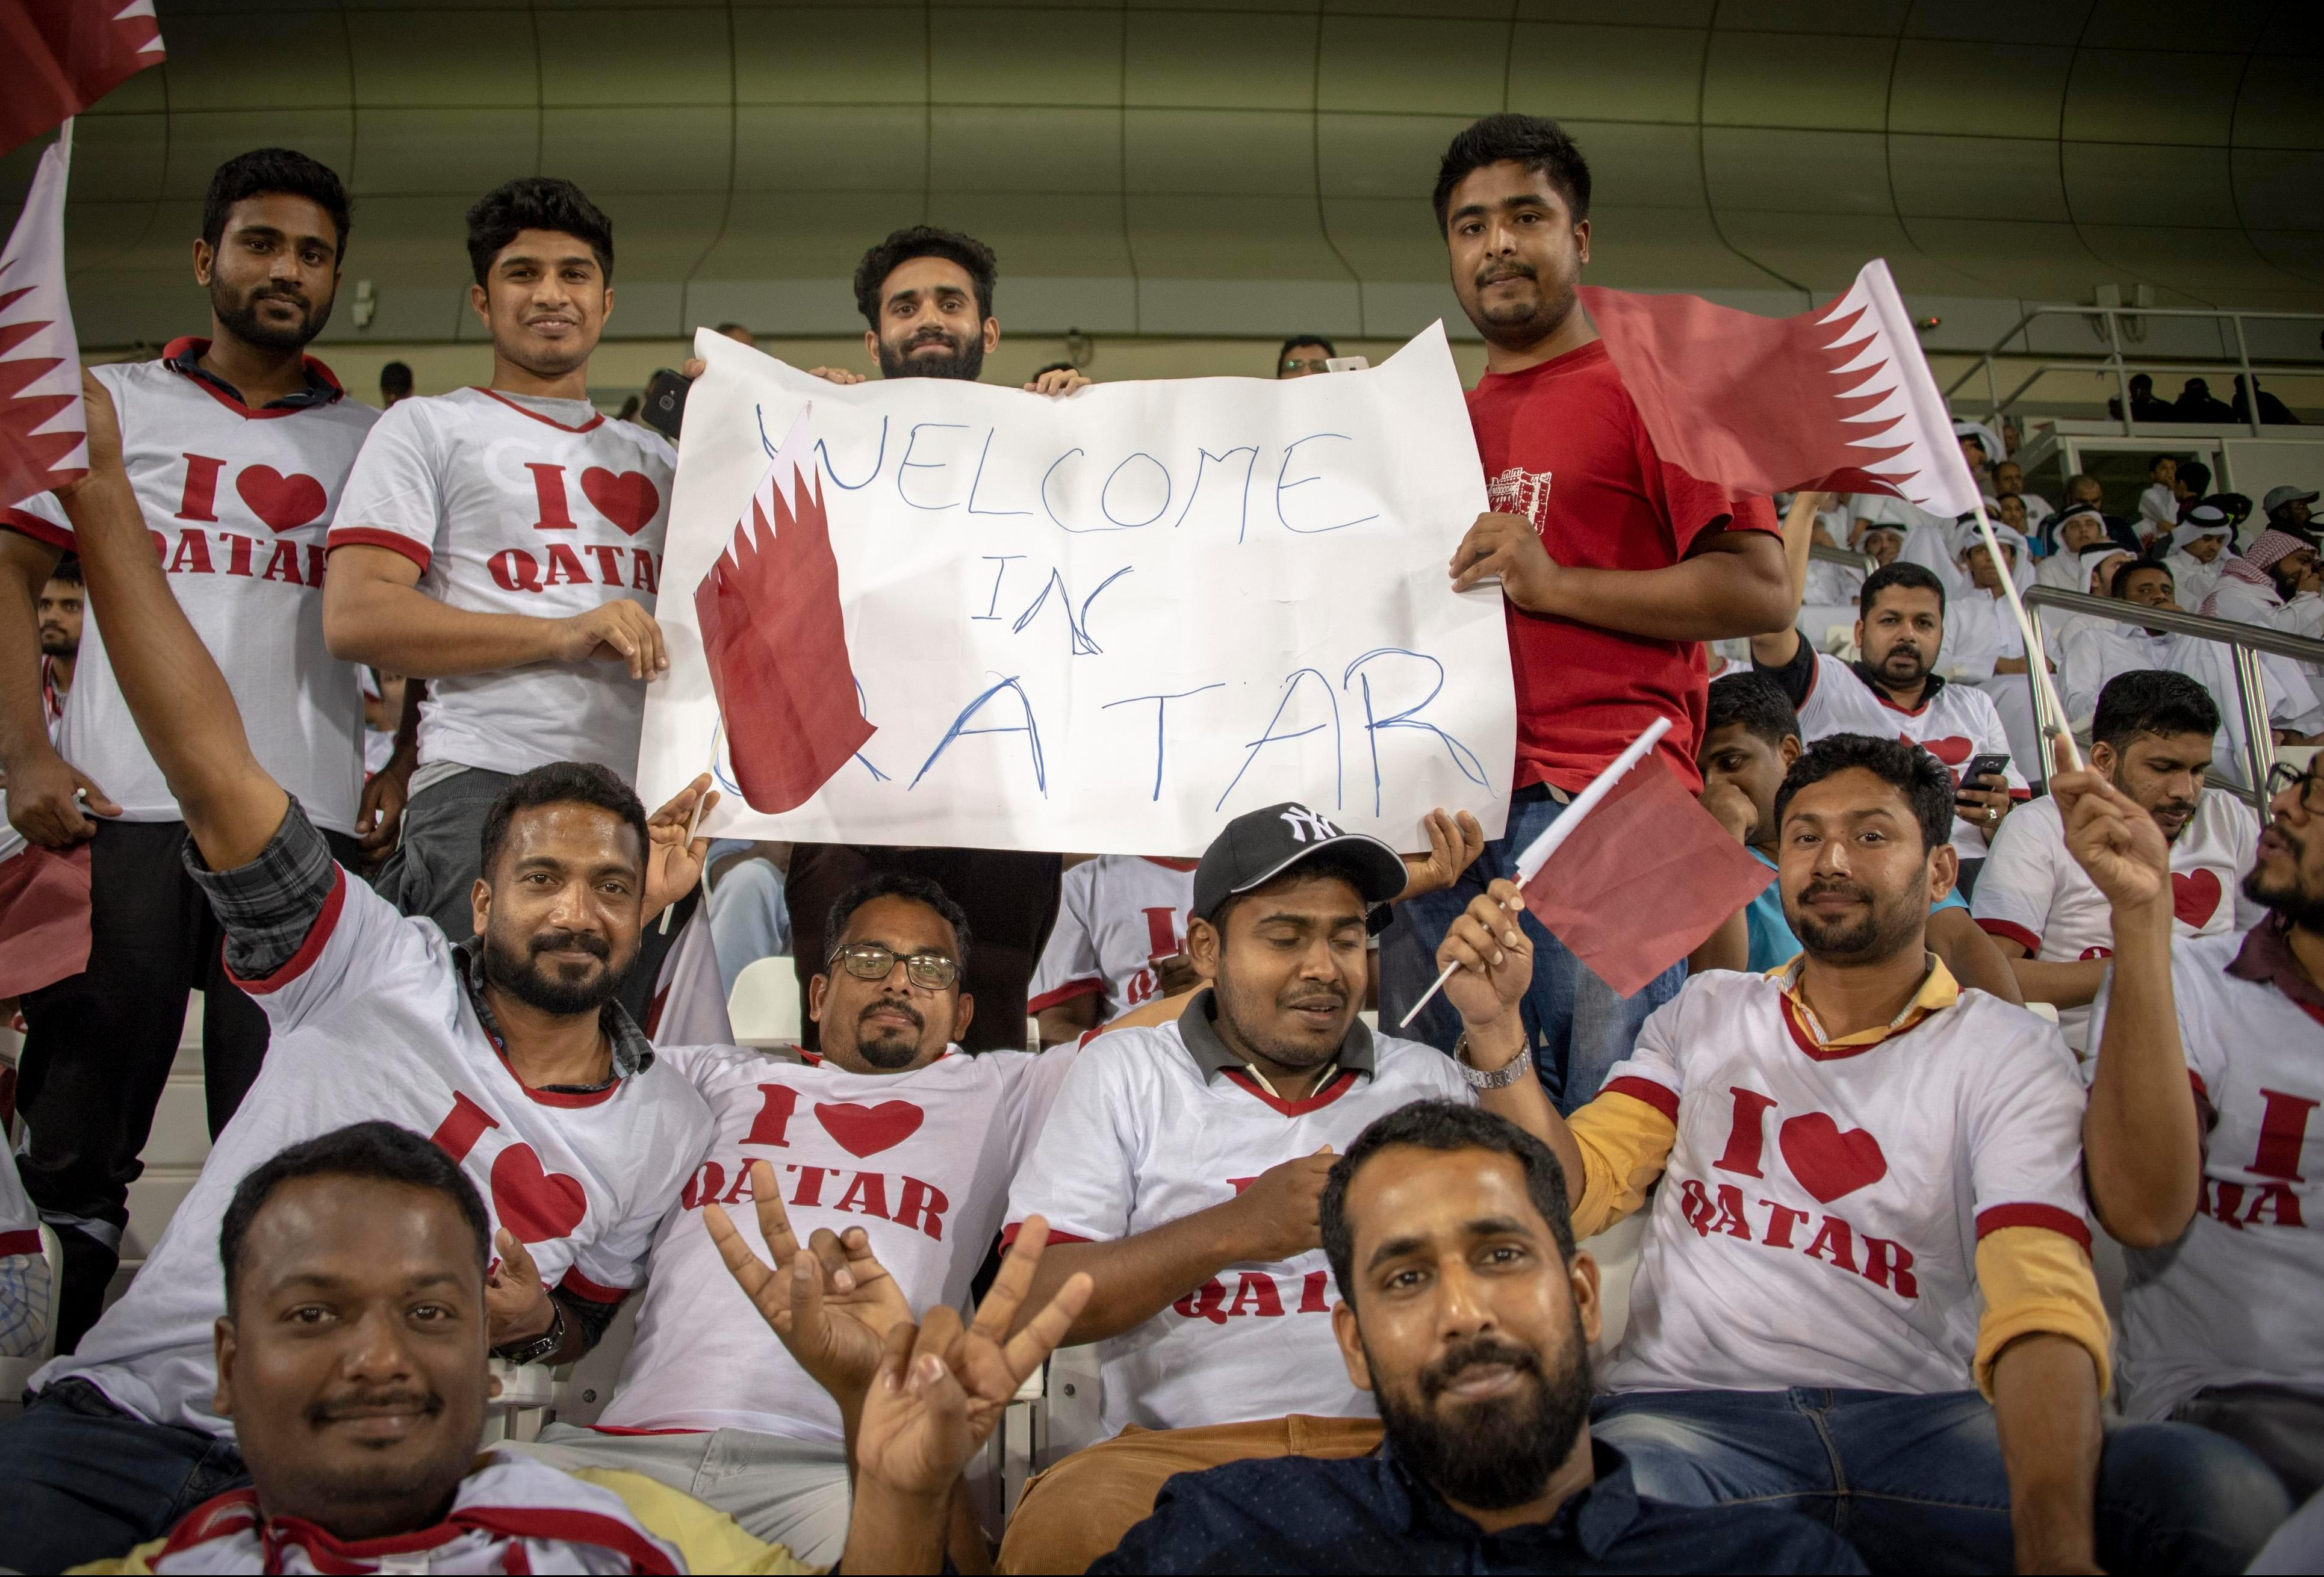 Limousine driver Jahed Mohammed, 23, right. originally from Bangladesh is part of a group holding a banner saying: Welcome in Qatar